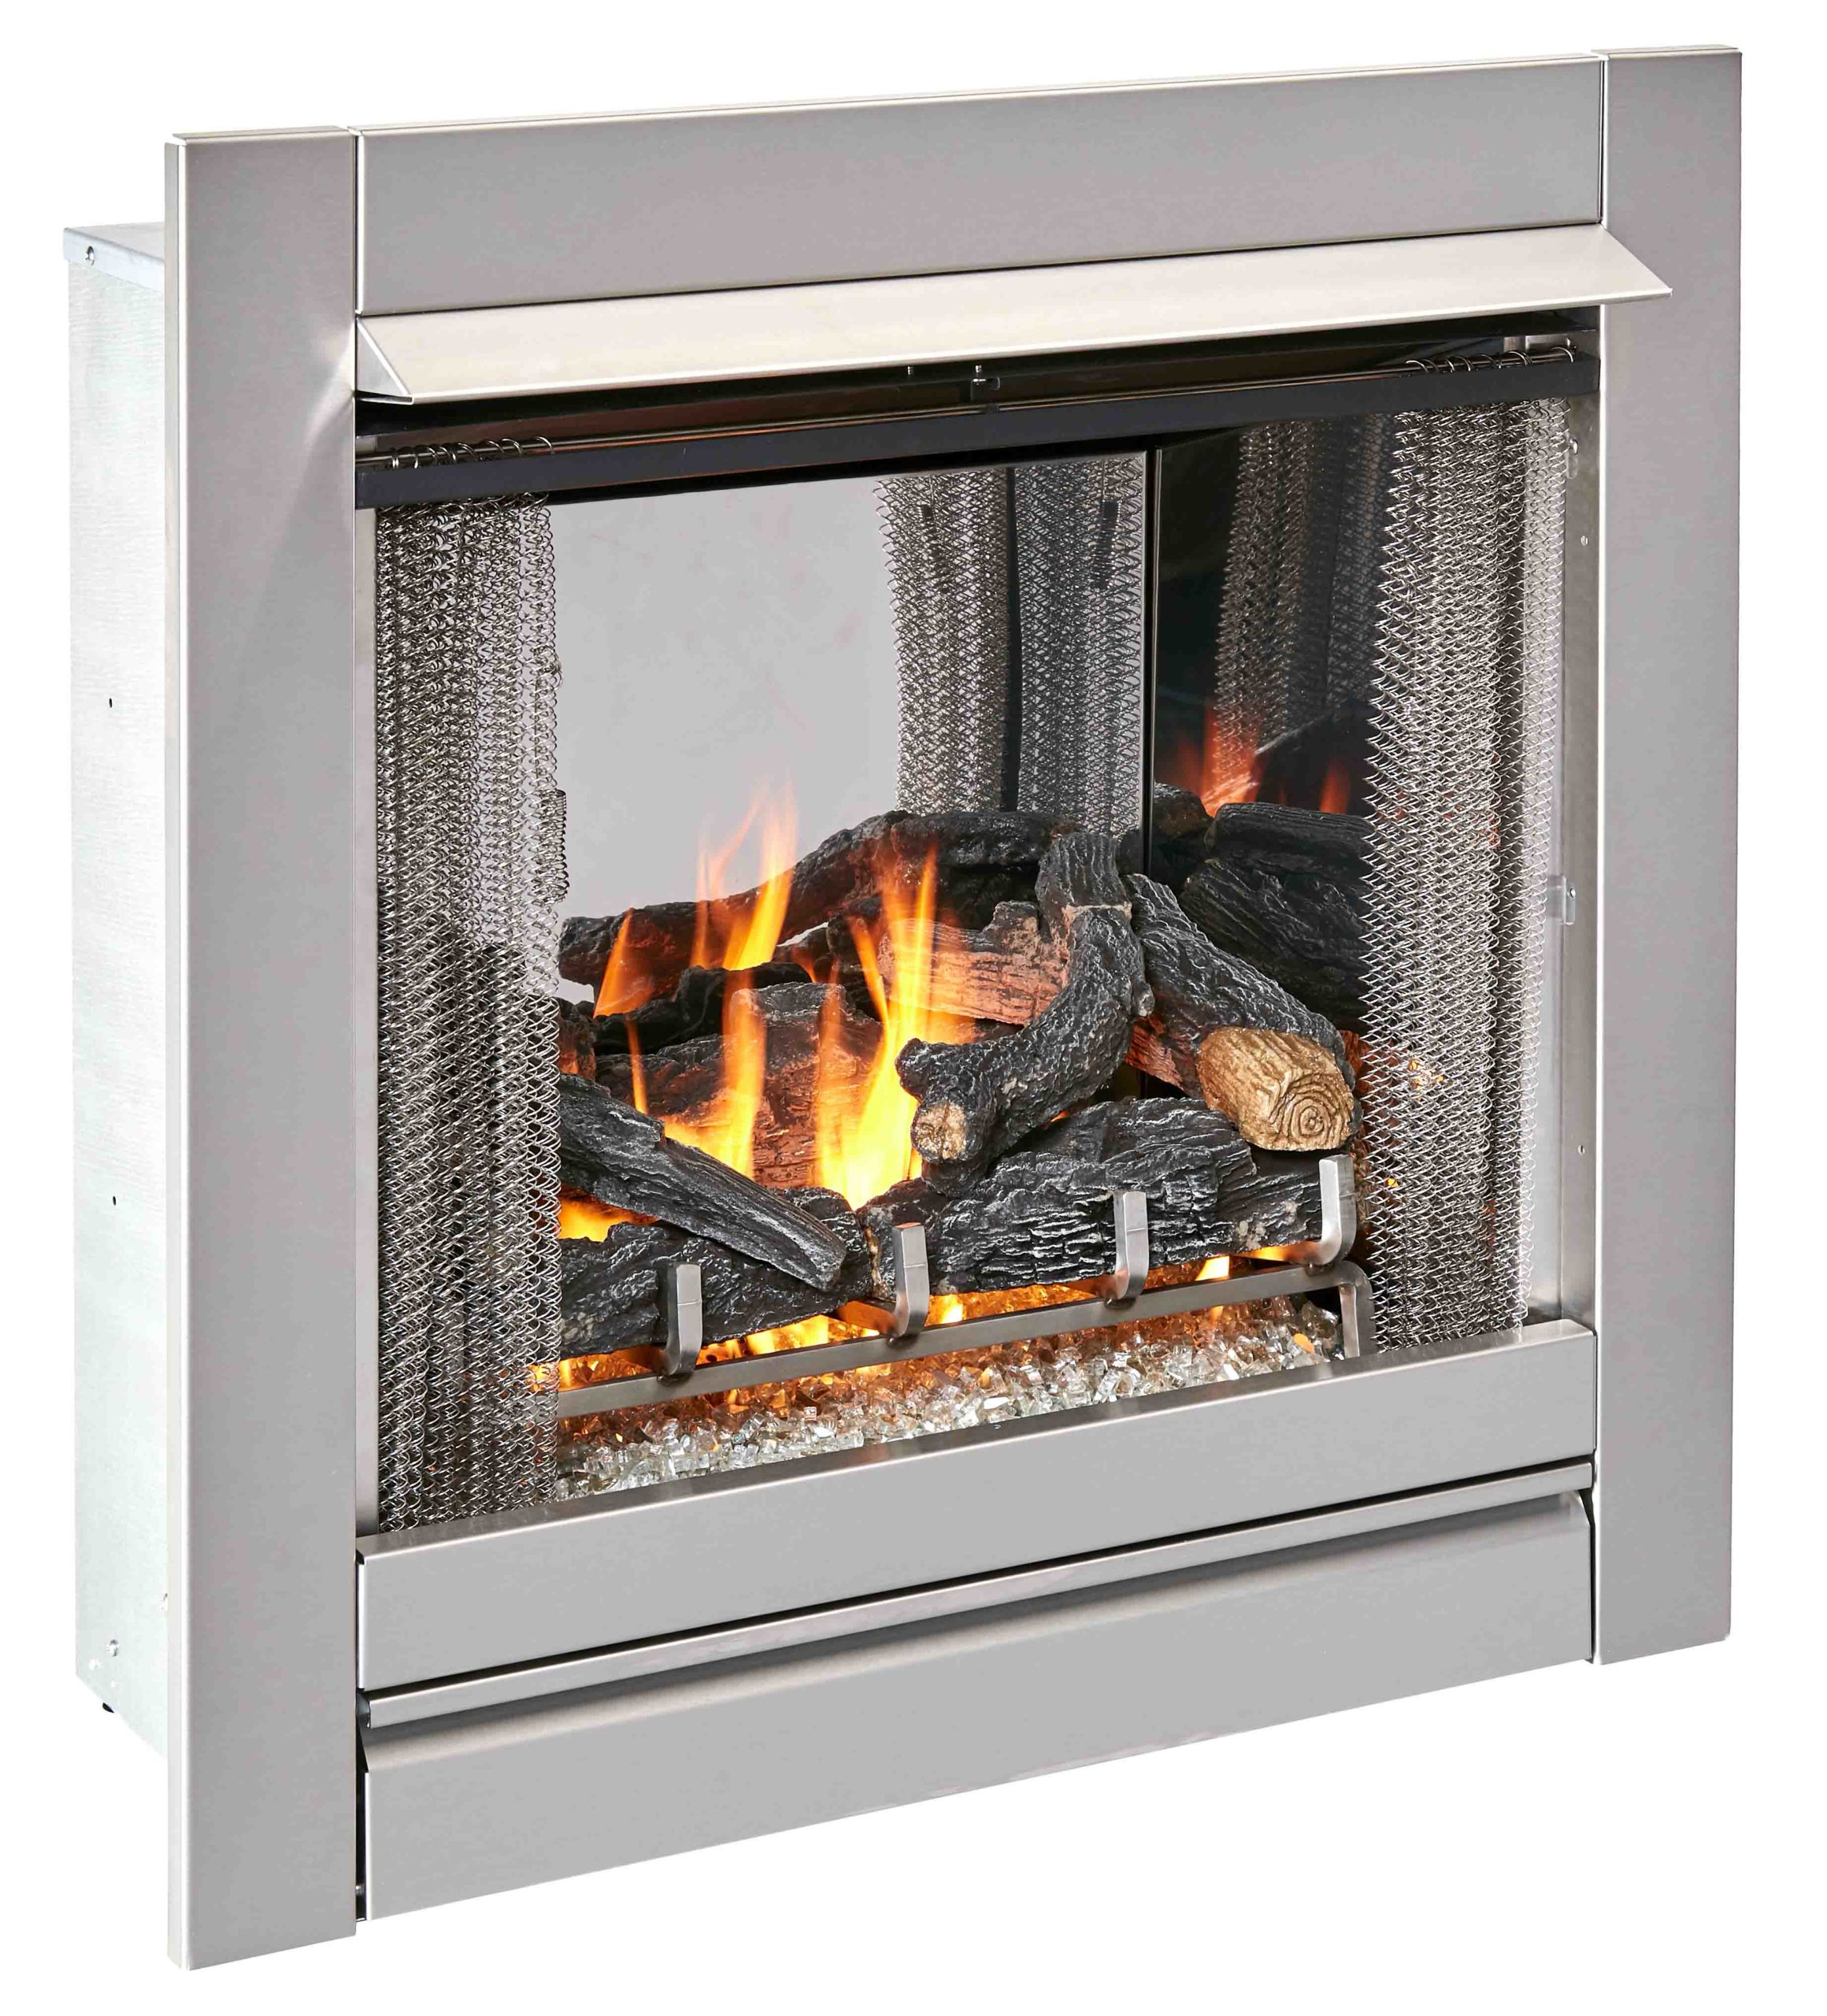 Duluth Forge Ventless Stainless Outdoor Gas Fireplace Insert With Glass Media and Log Set ...